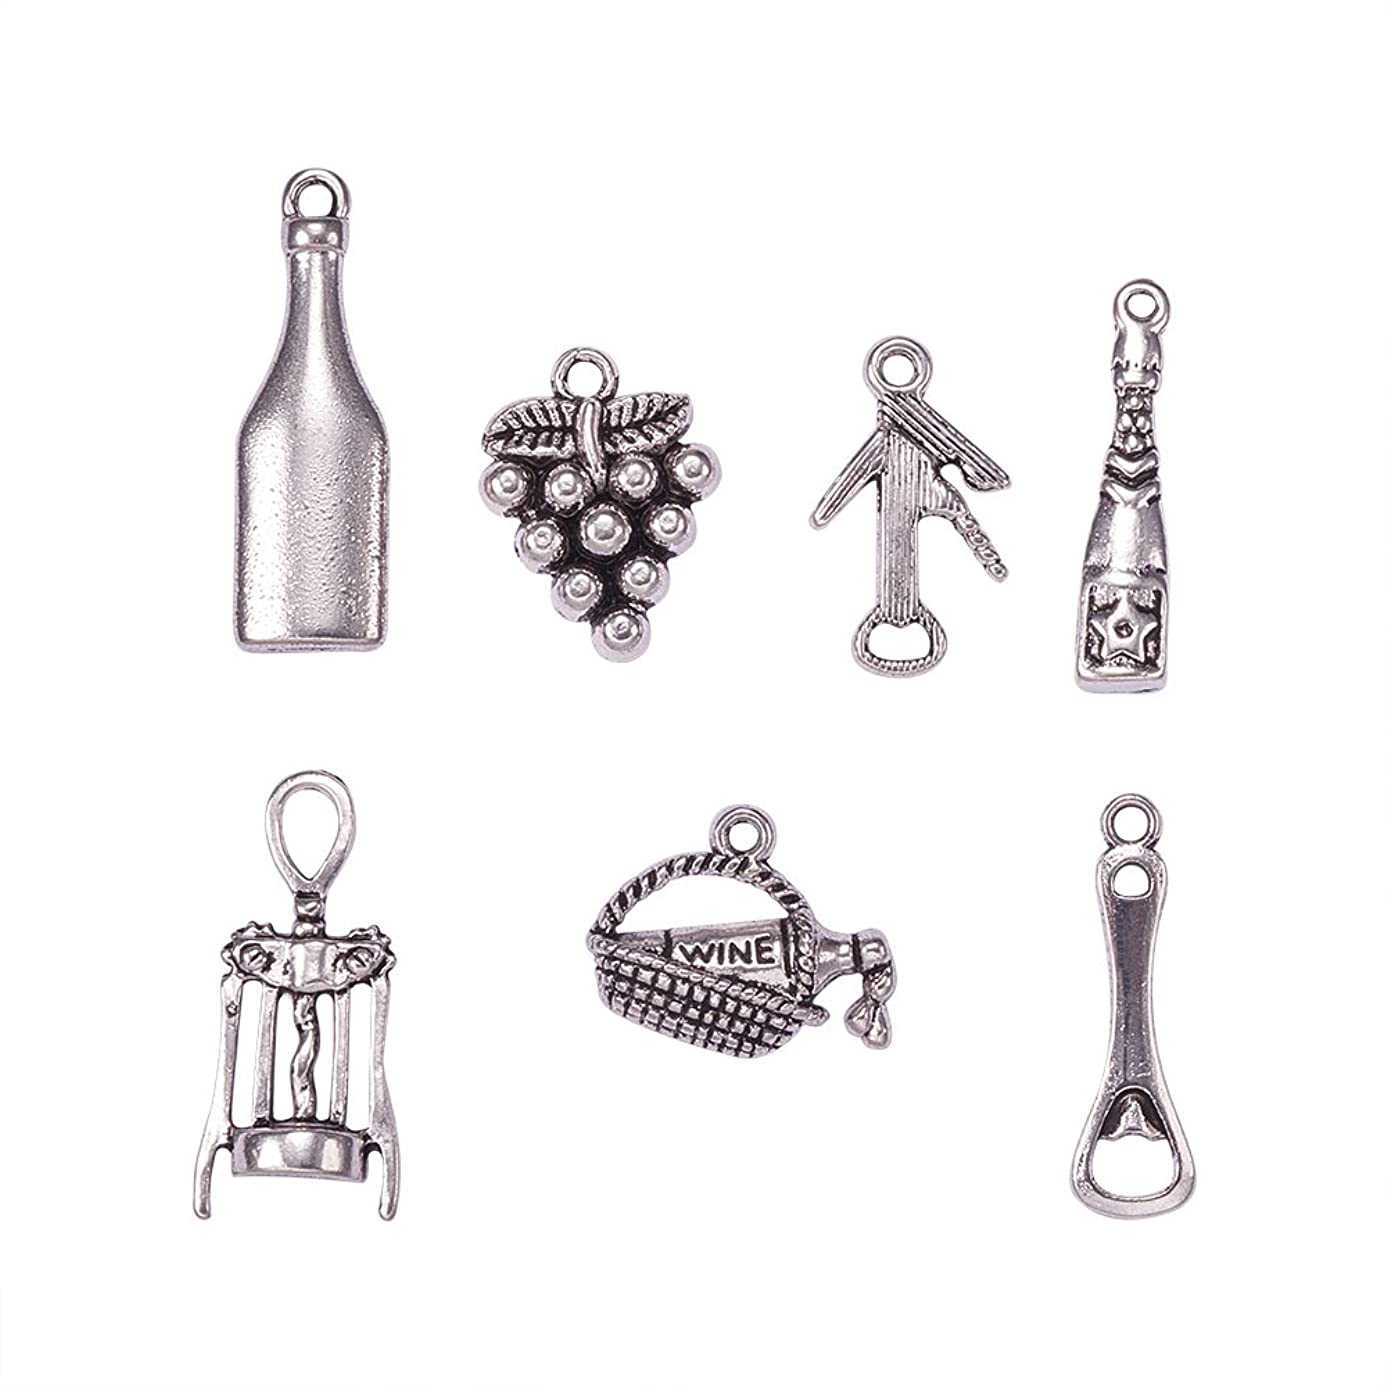 PH PandaHall 35pcs 7 Styles Wine Theme Charms Antique Silver Alloy Pendants Charms for DIY Necklace Bracelet Jewelry Making (Tasting Wine, Grape, Cocktail, Glass Wine Opener)